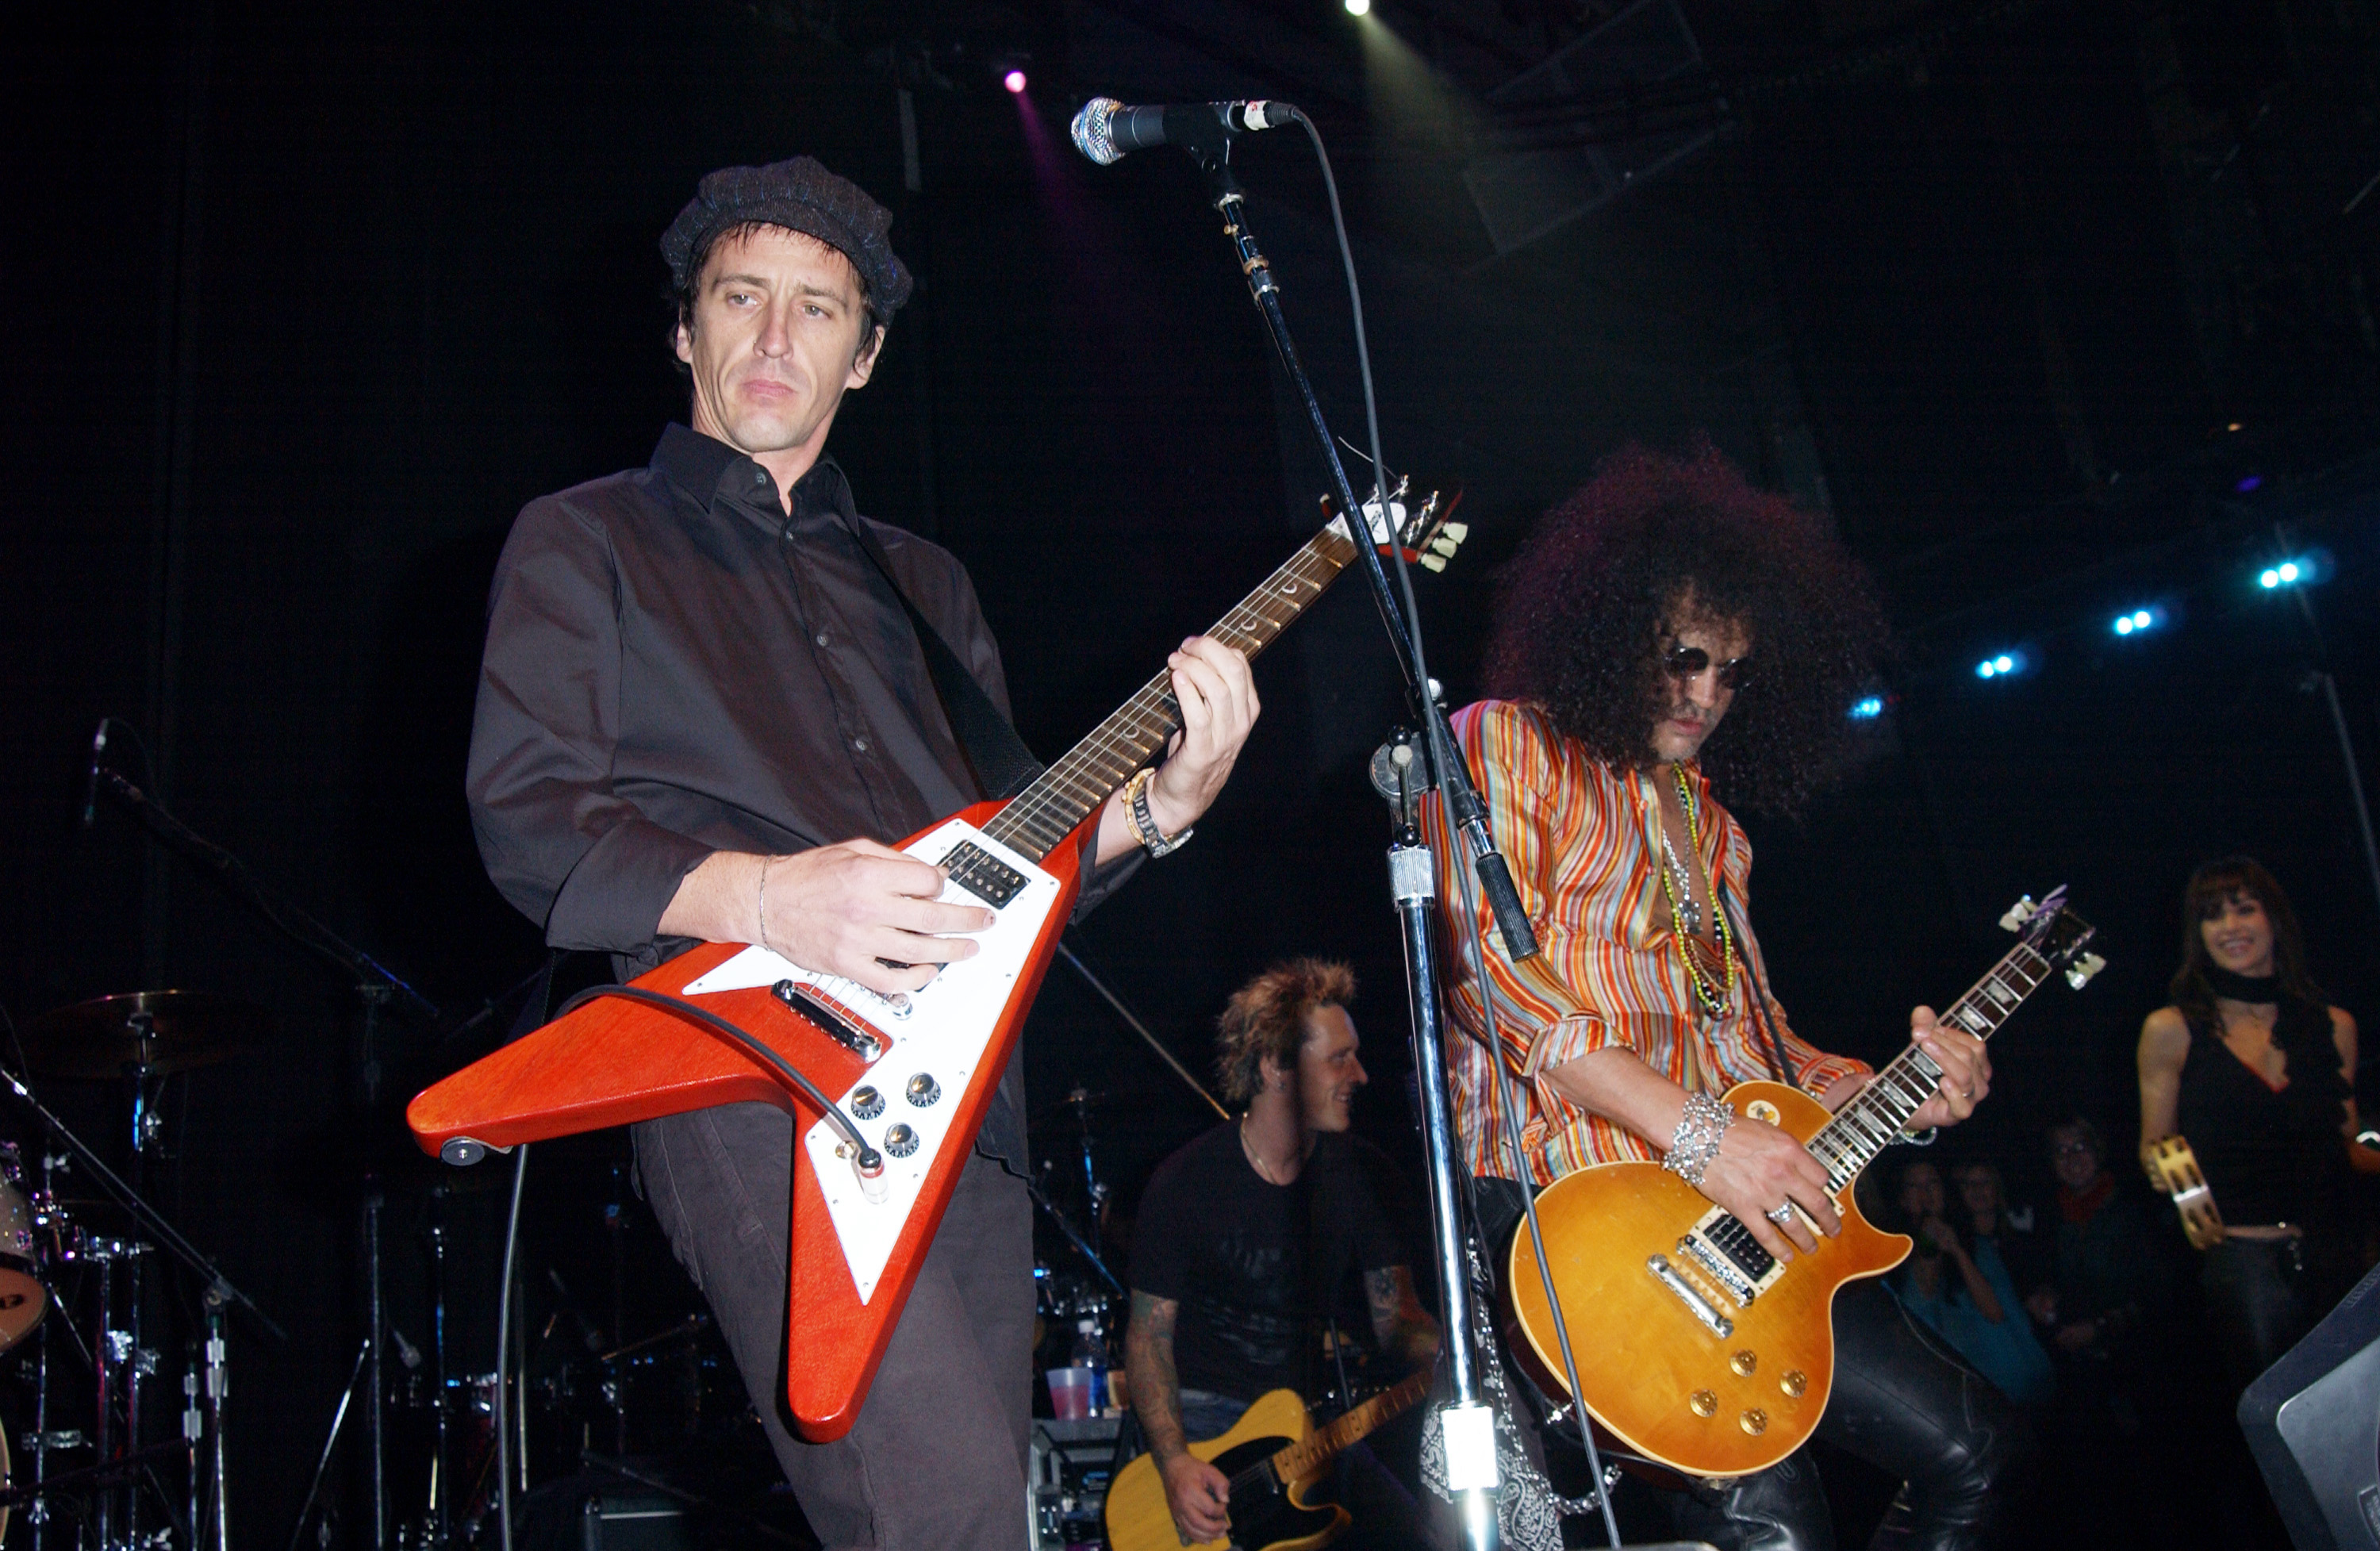 Izzy Stradlin and Slash during DKNY Presents Vanity Fair 'In Concert' To Benefit Step Up Women's Network - Concert at Avalon